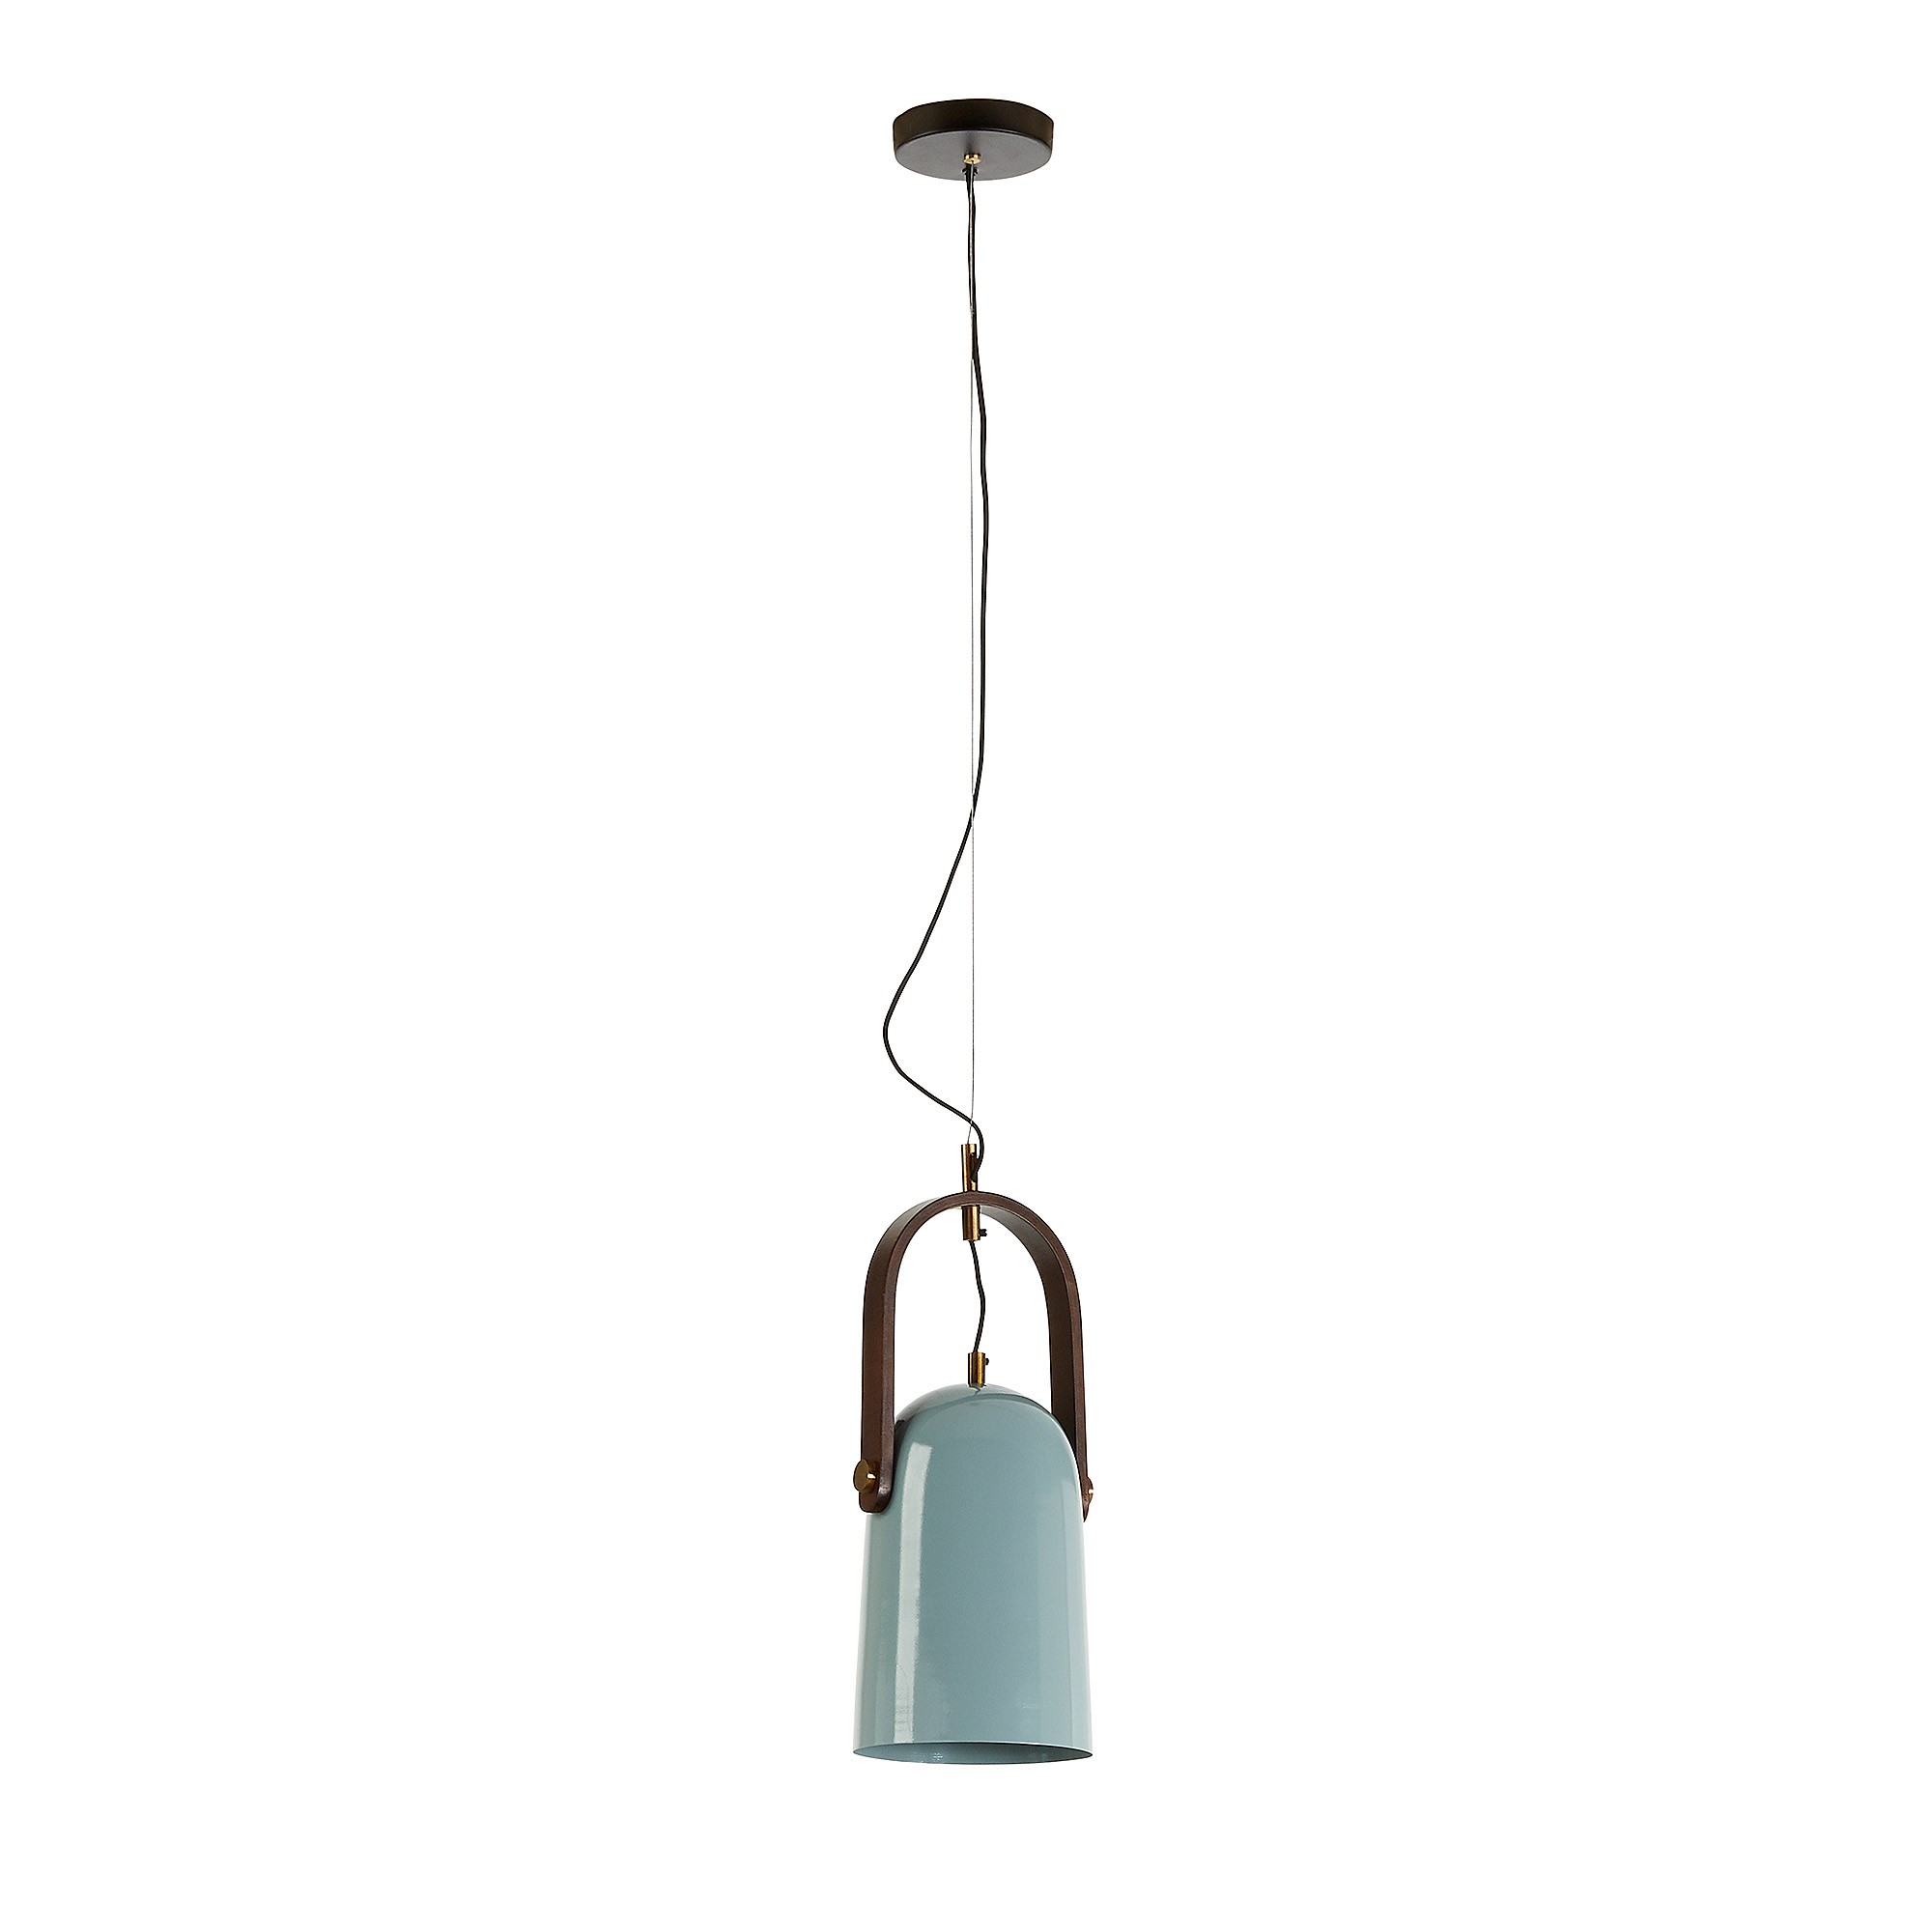 Zaka Steel Pendant Light, Long Shade, Duck Egg Blue